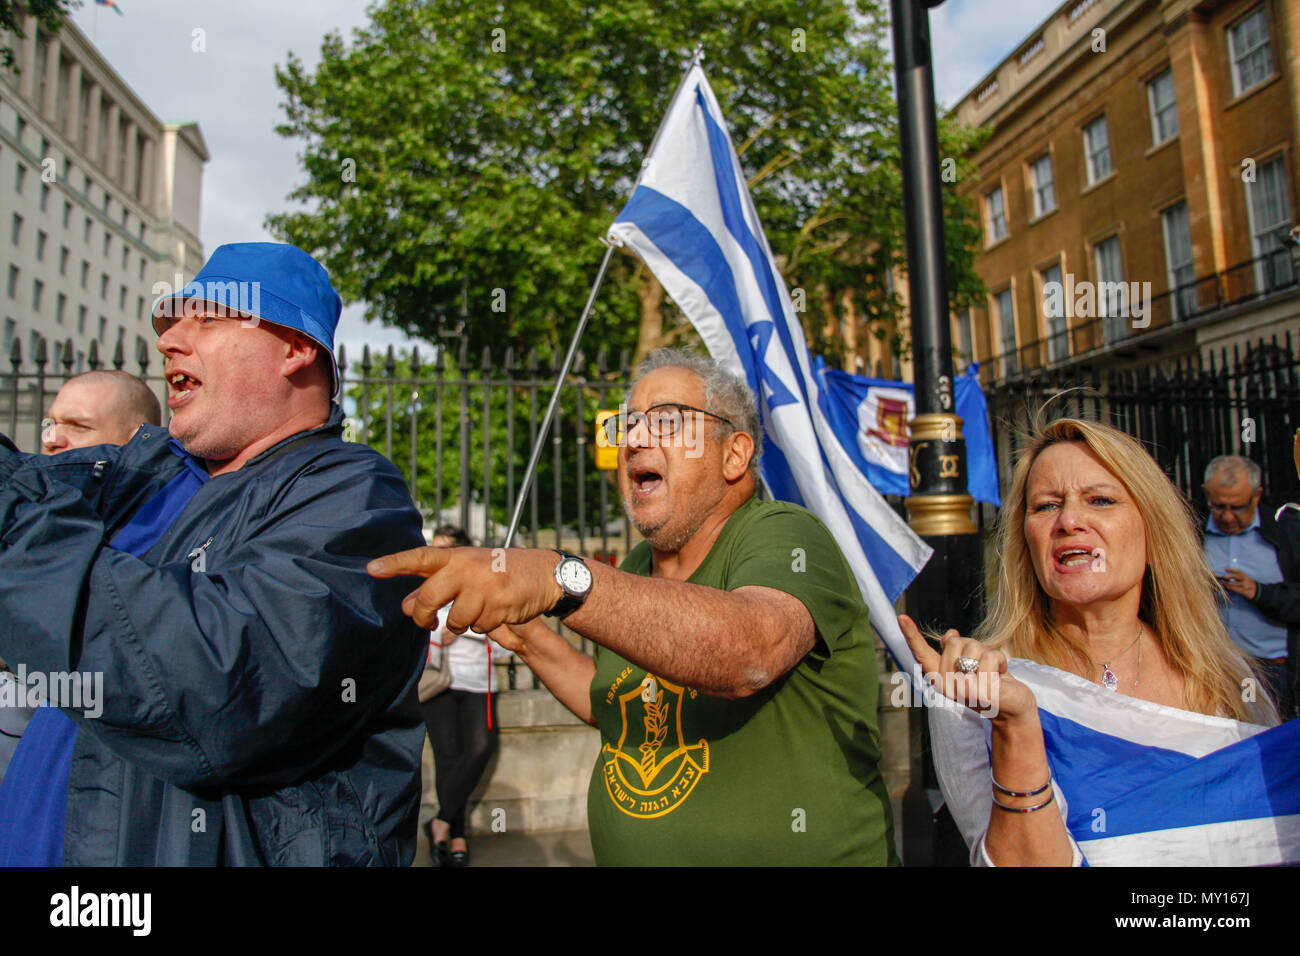 London, UK. 5th June, 2018. Israeli counter-demo at the Protest to Free Palestine Credit: Alex Cavendish/Alamy Live News - Stock Image